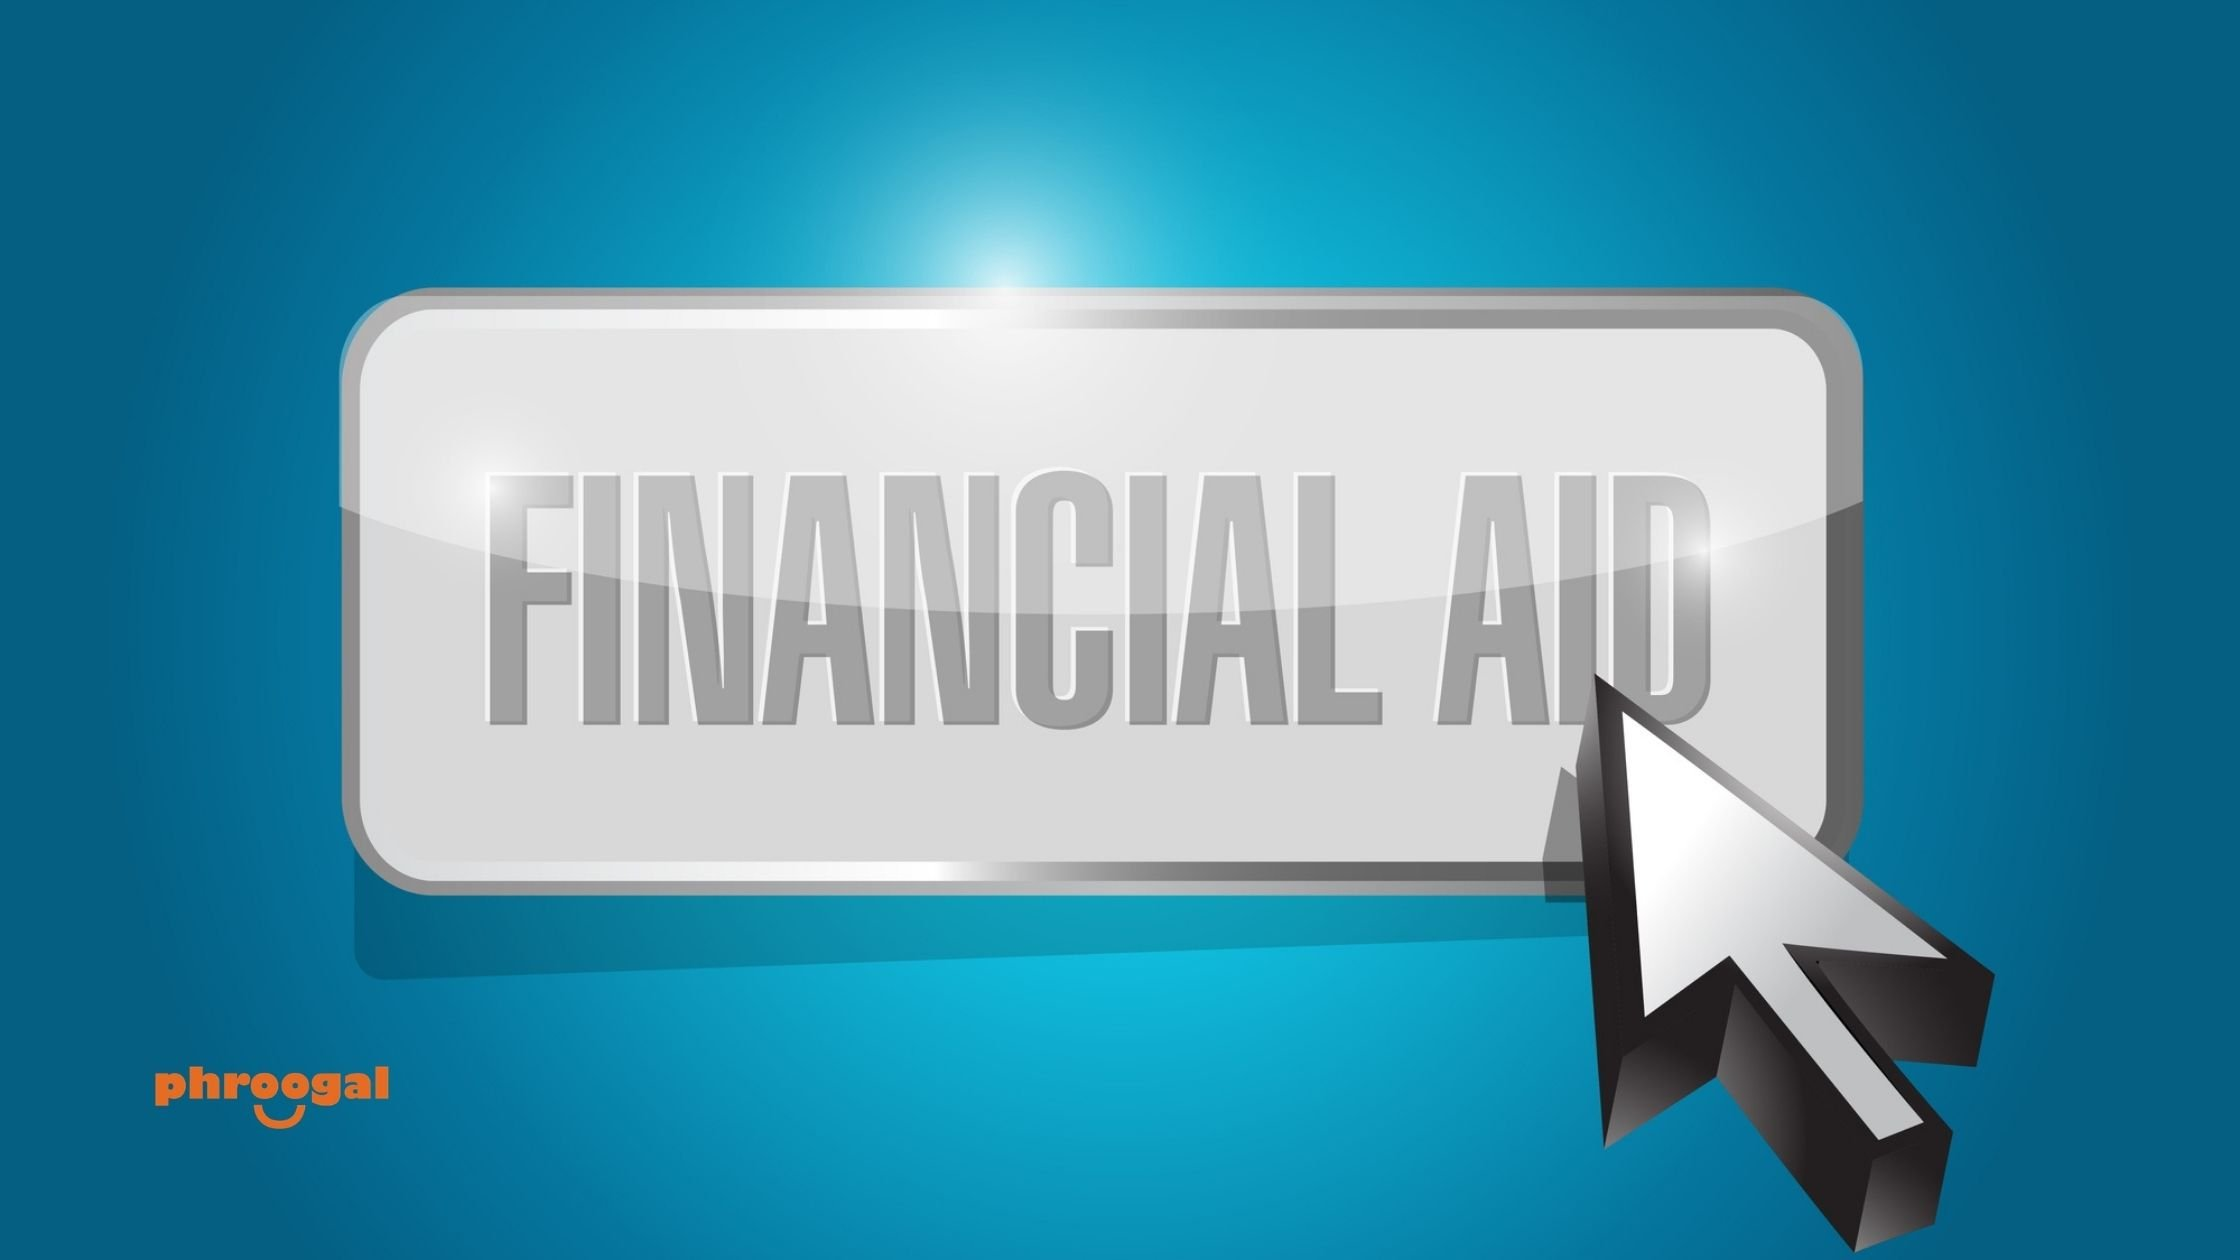 The Ultimate Guide to Financial Aid